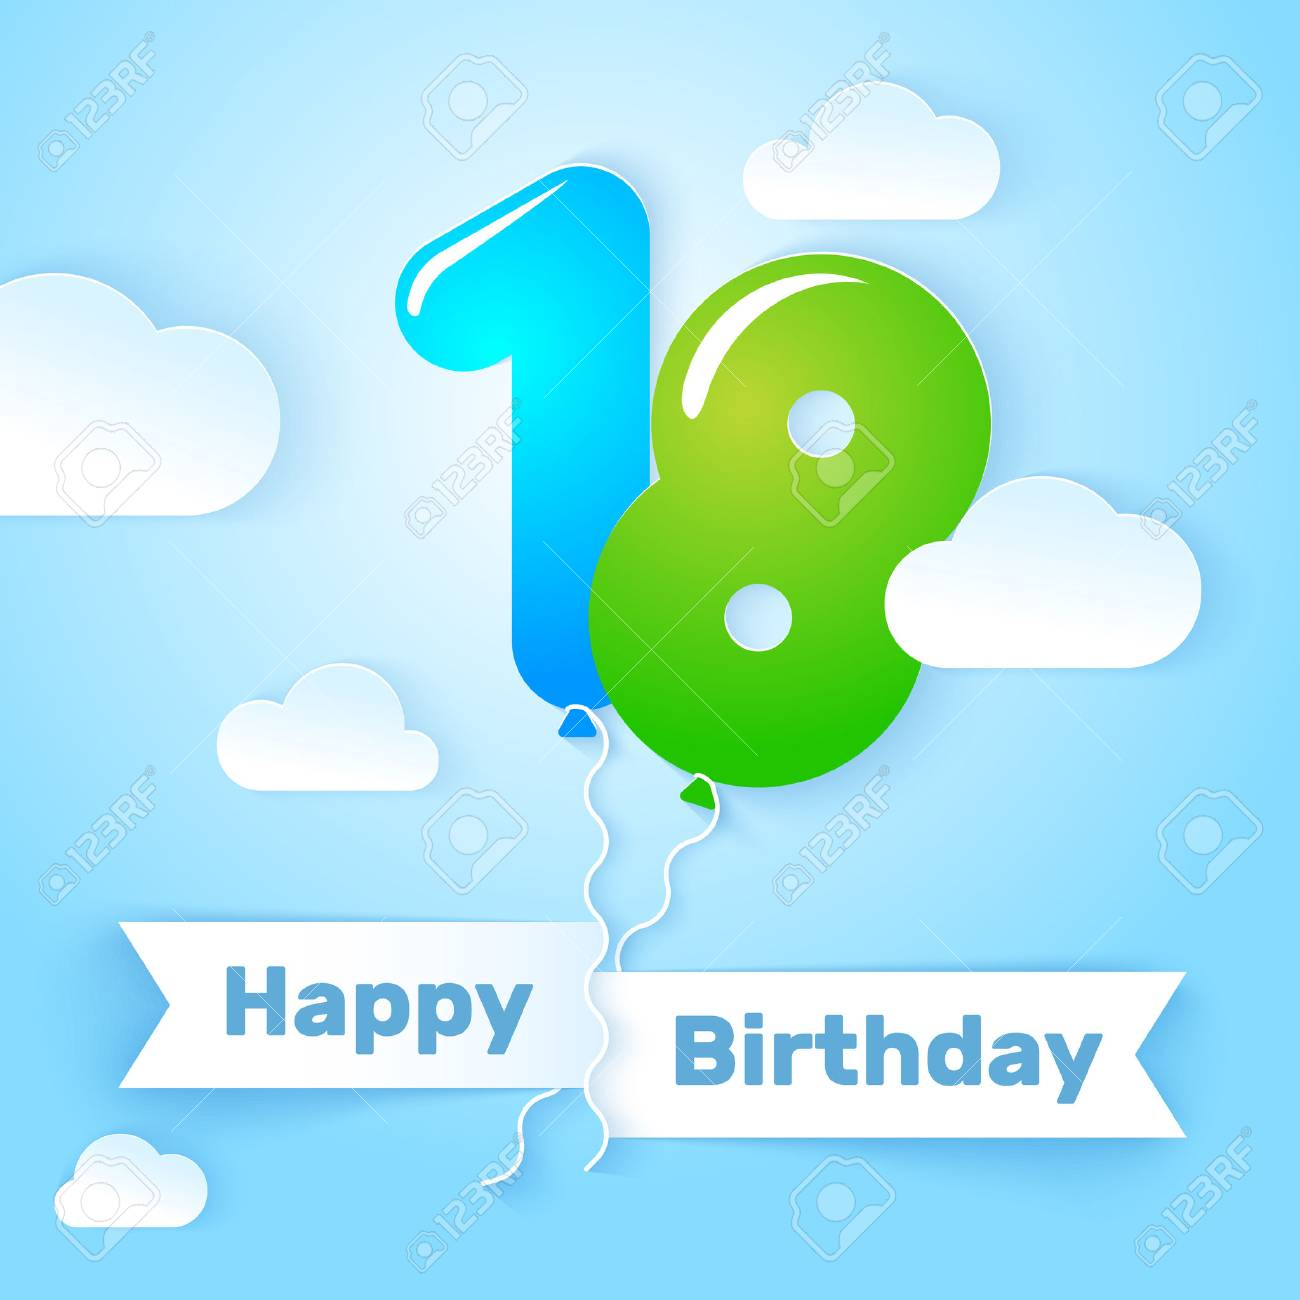 Happy Birthday Card Template With Number Balloon 18 Years Vector Illustration Stock